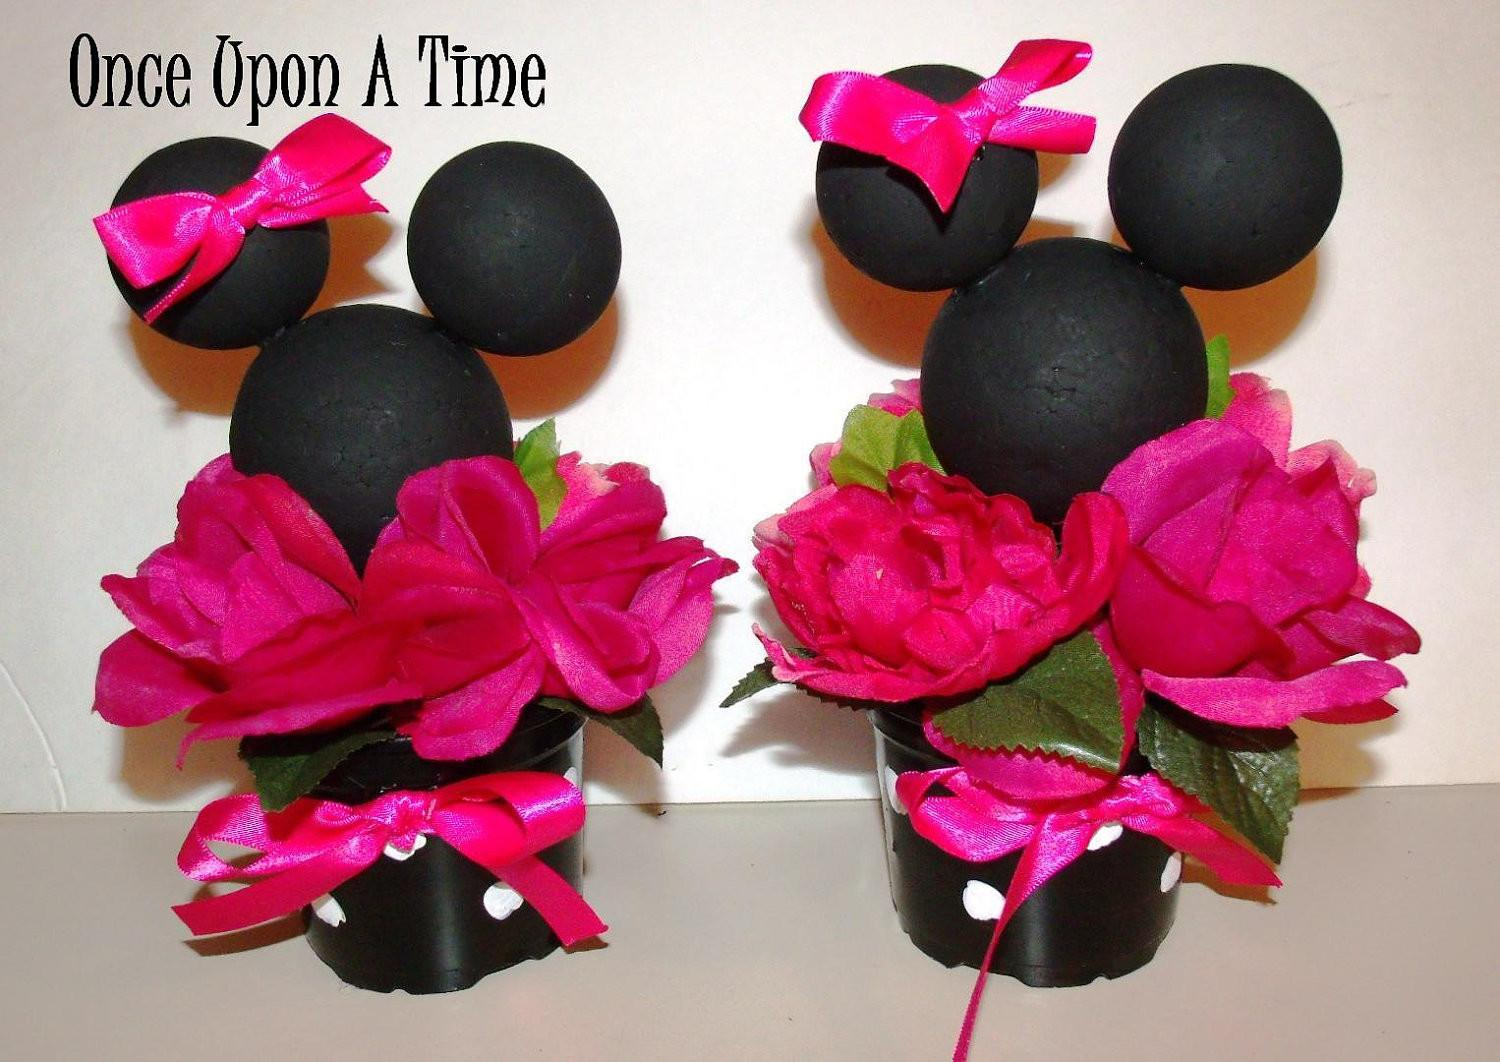 Minnie Mouse Party Decorations Onceuponatimeshoppe